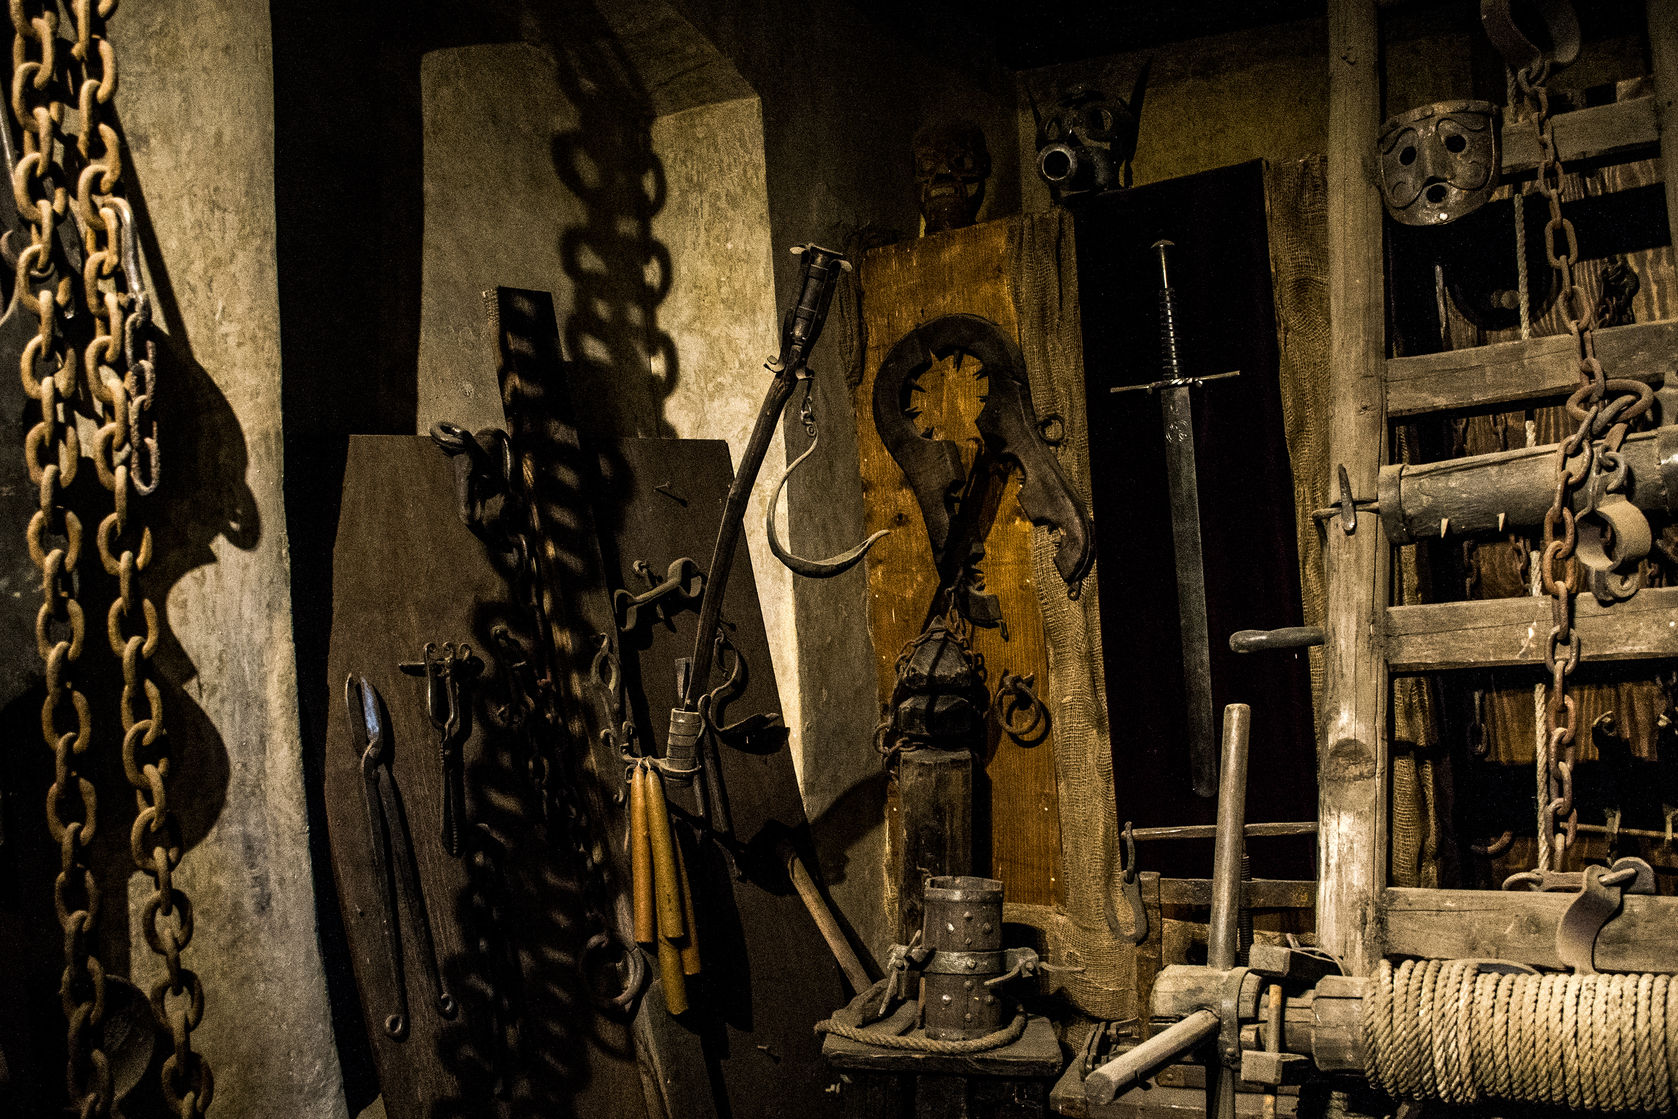 Medieval torture dungeon video free porn tubes